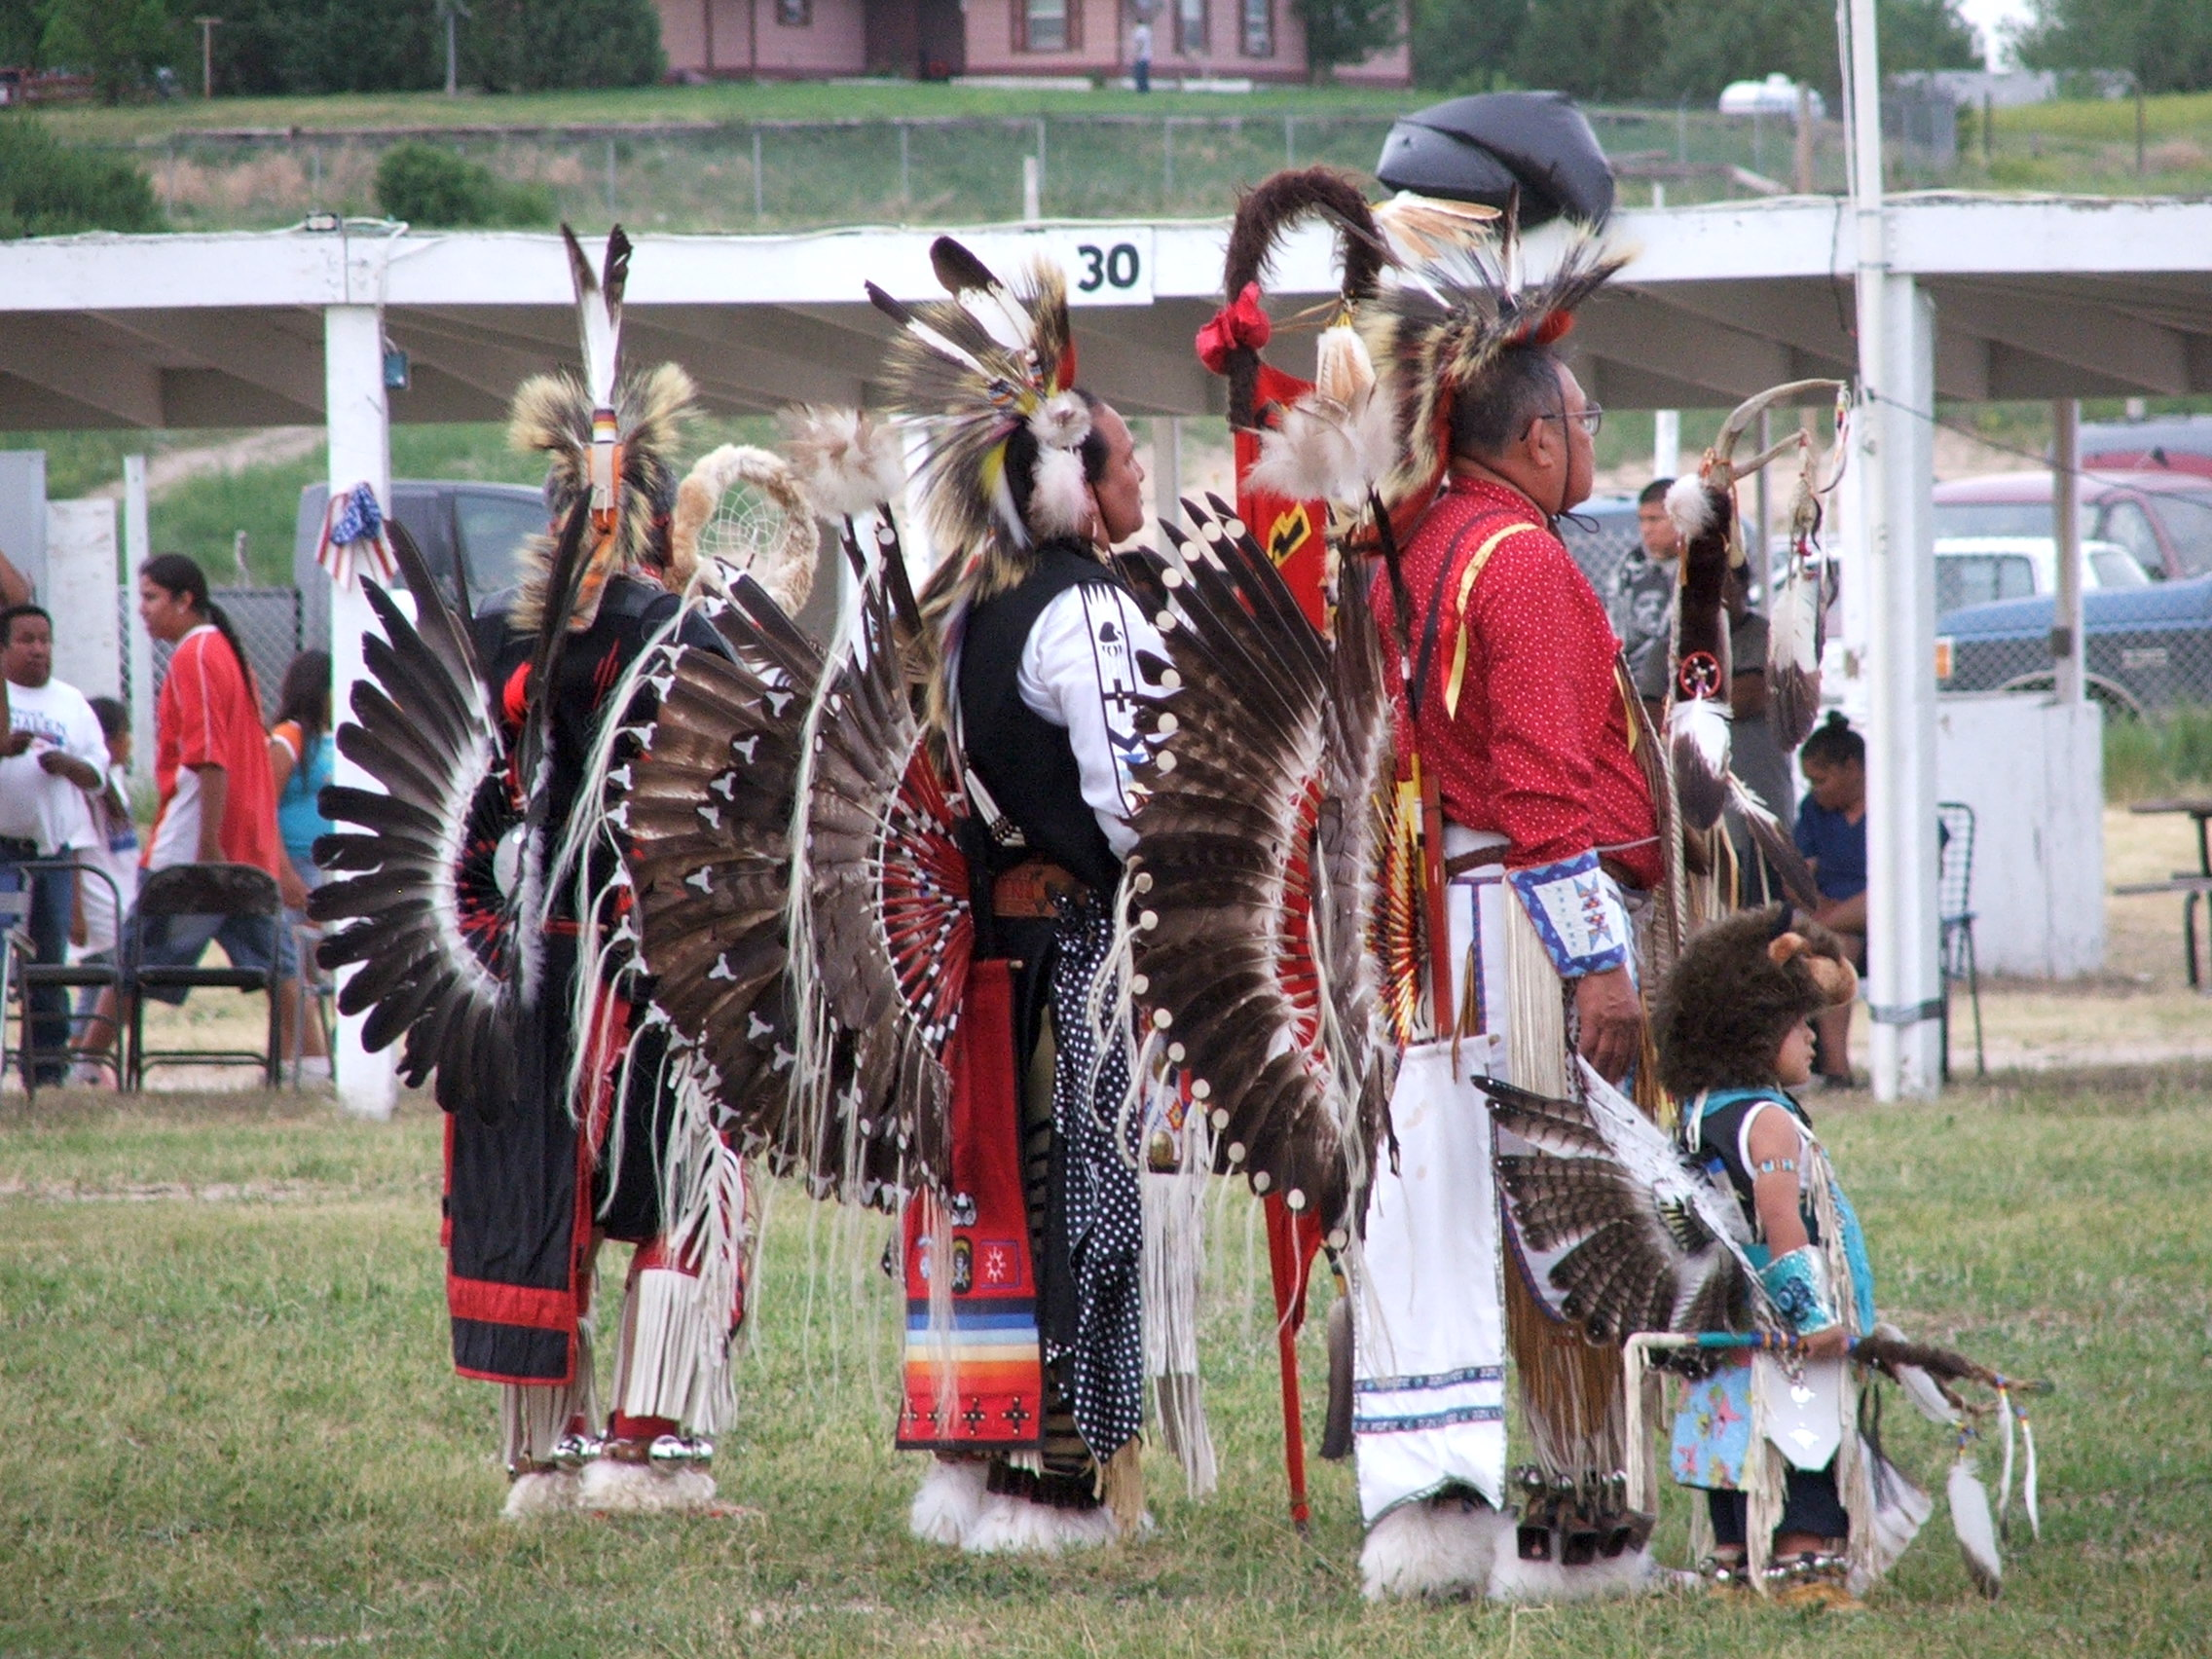 Brandon Ecoffey: Empower the people with tribal government reform